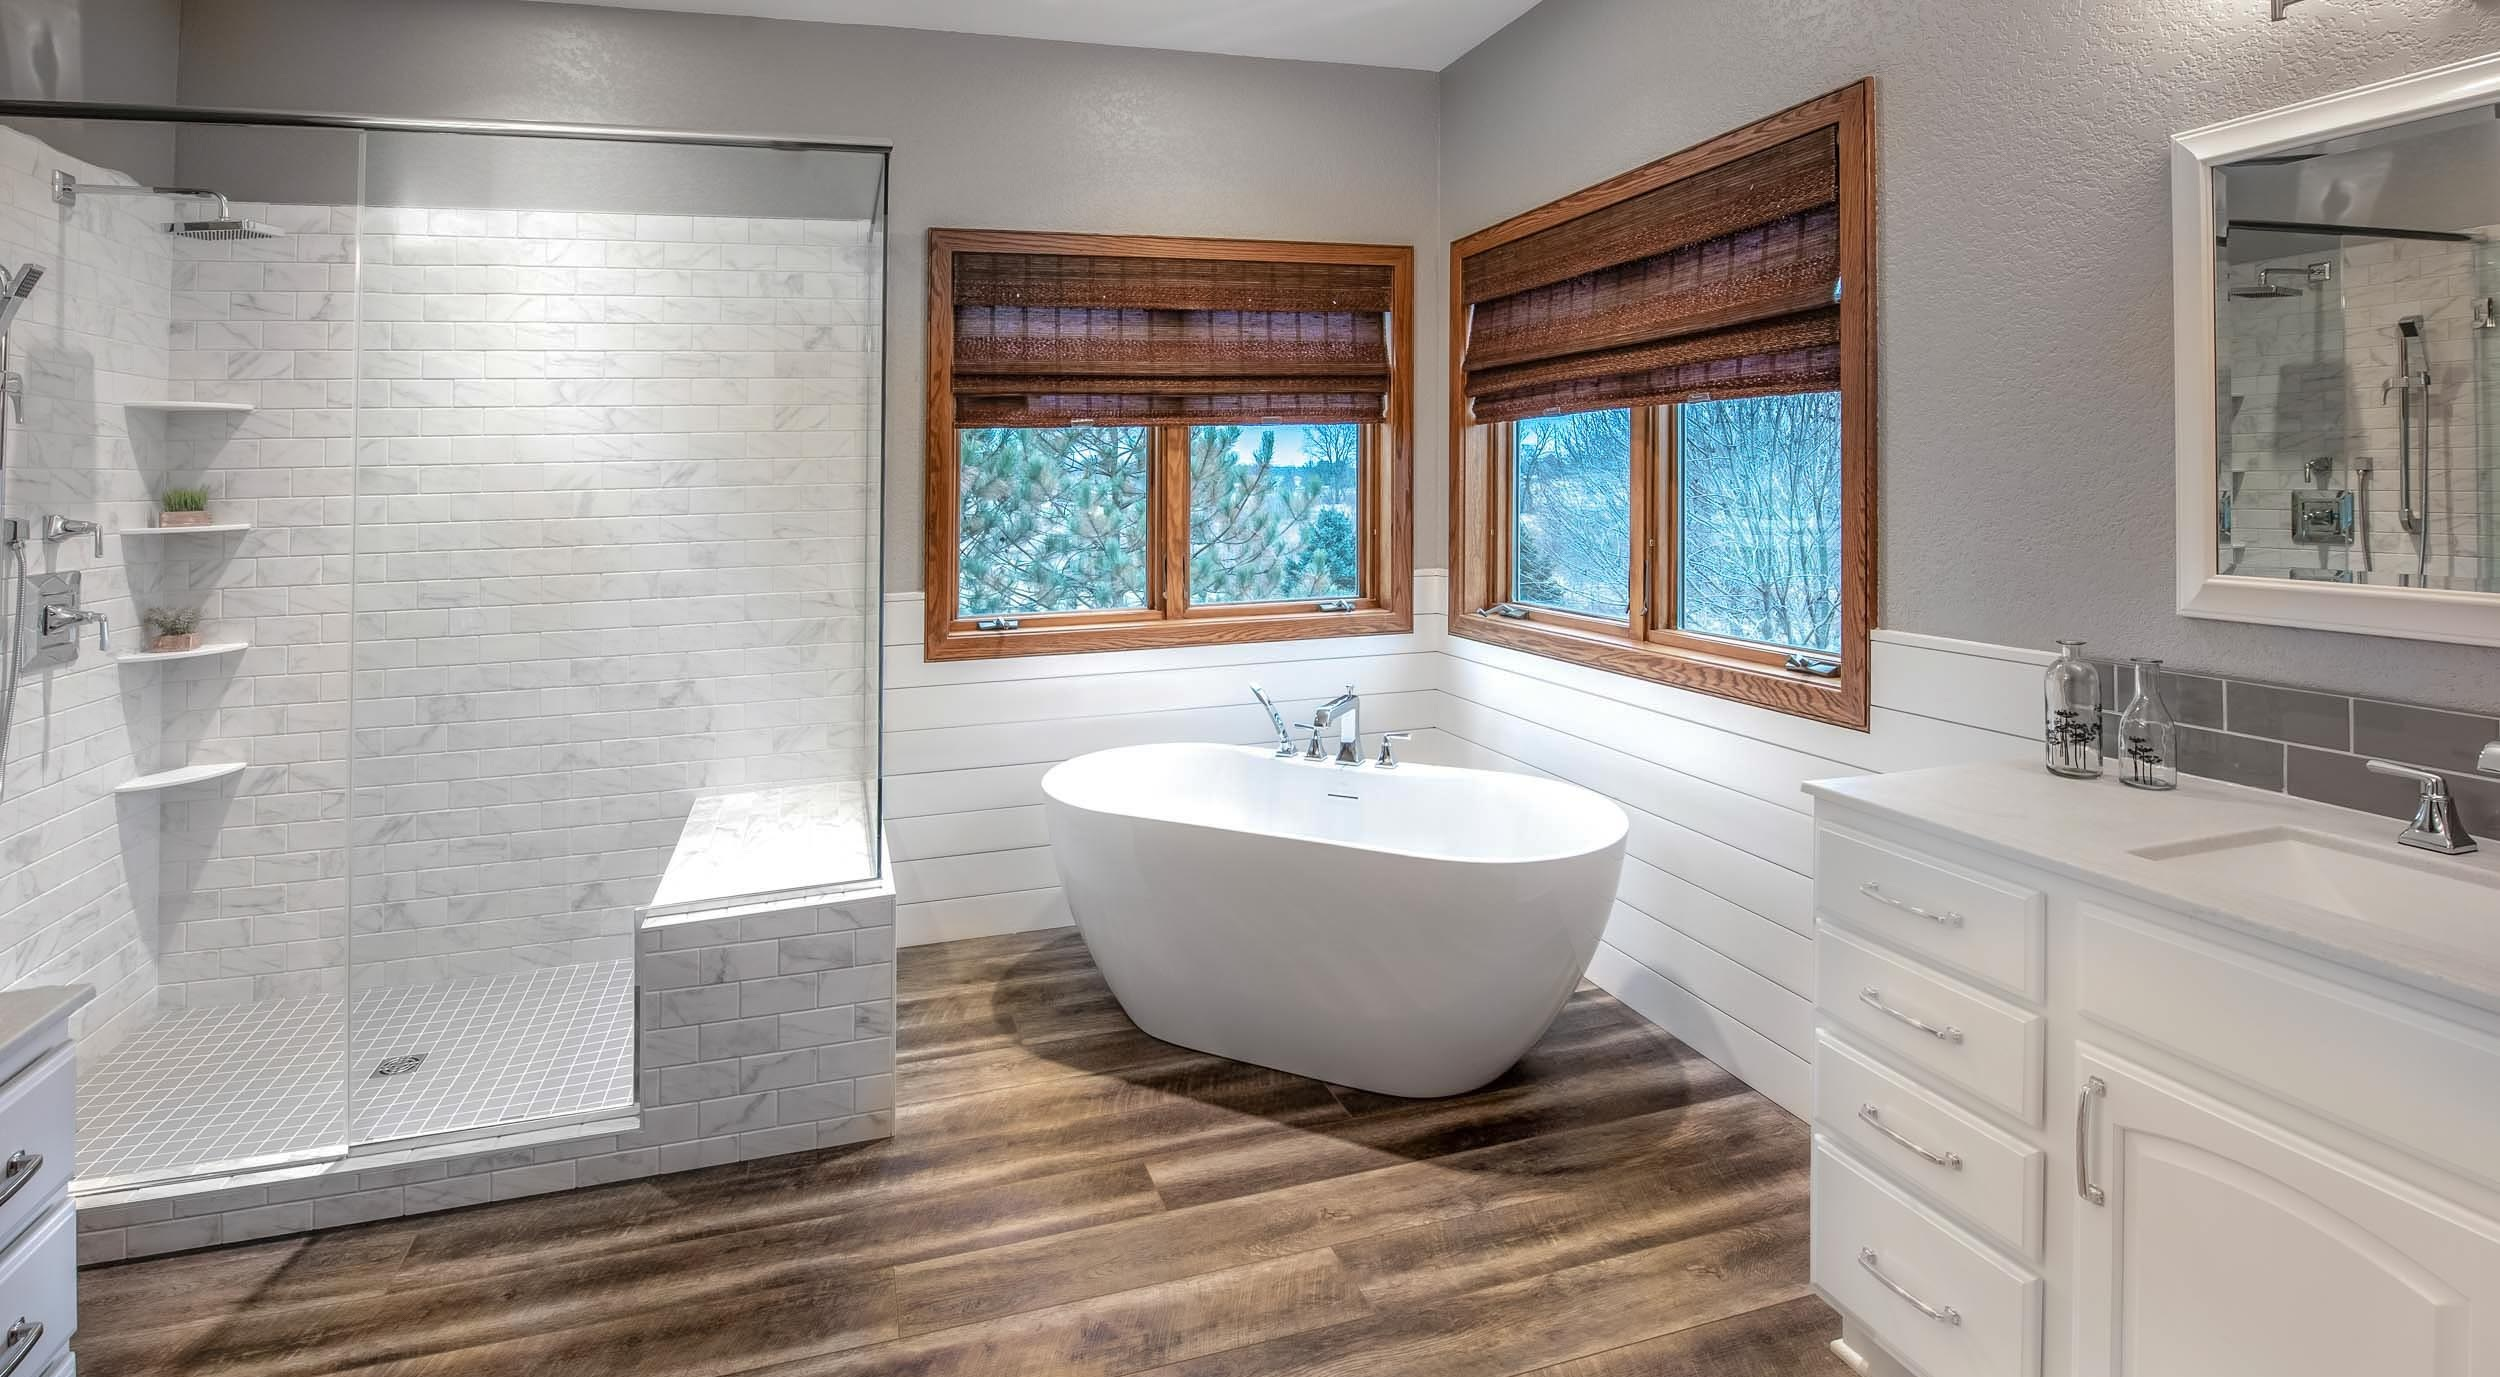 Multi-Room Home Remodeling in Windsor, Wis.